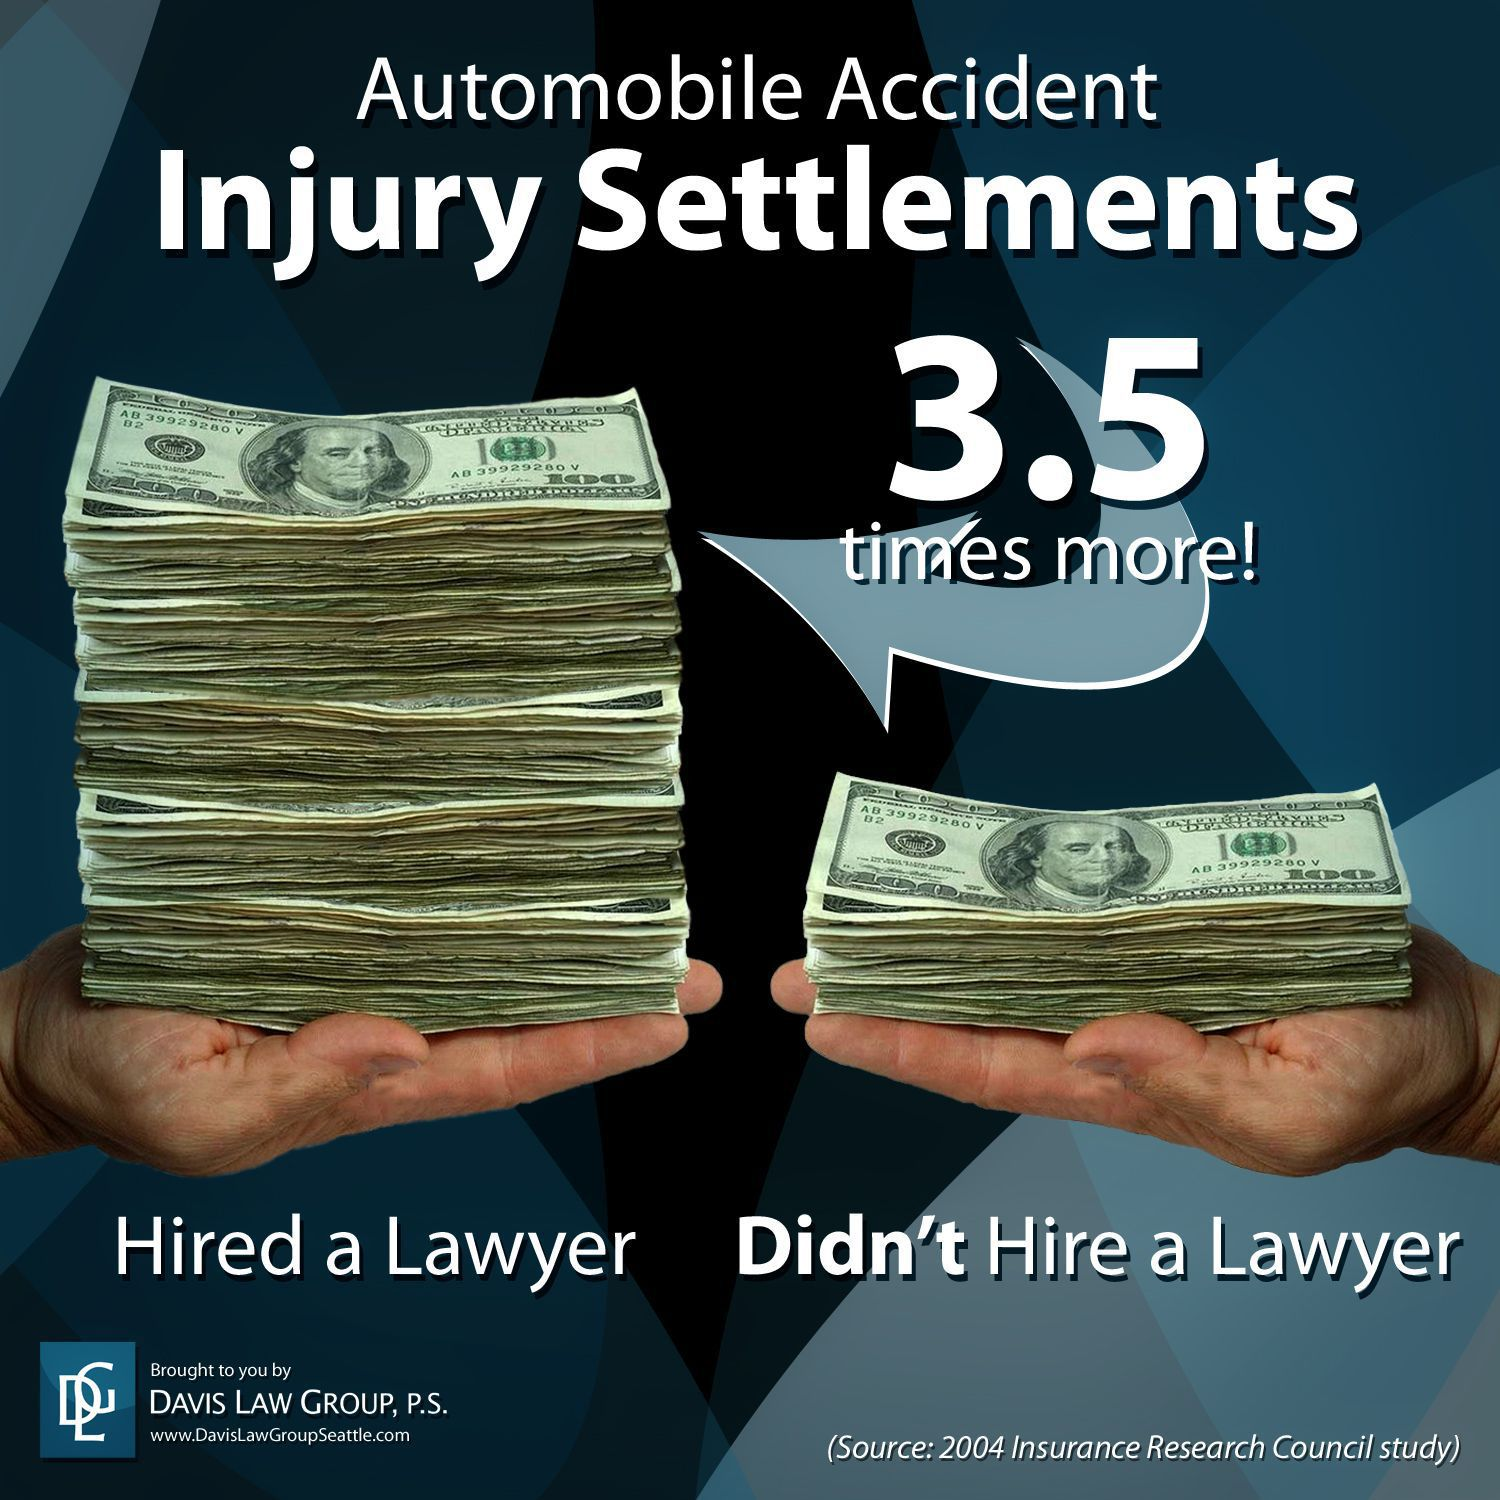 hire an attorney and receive a bigger settlement